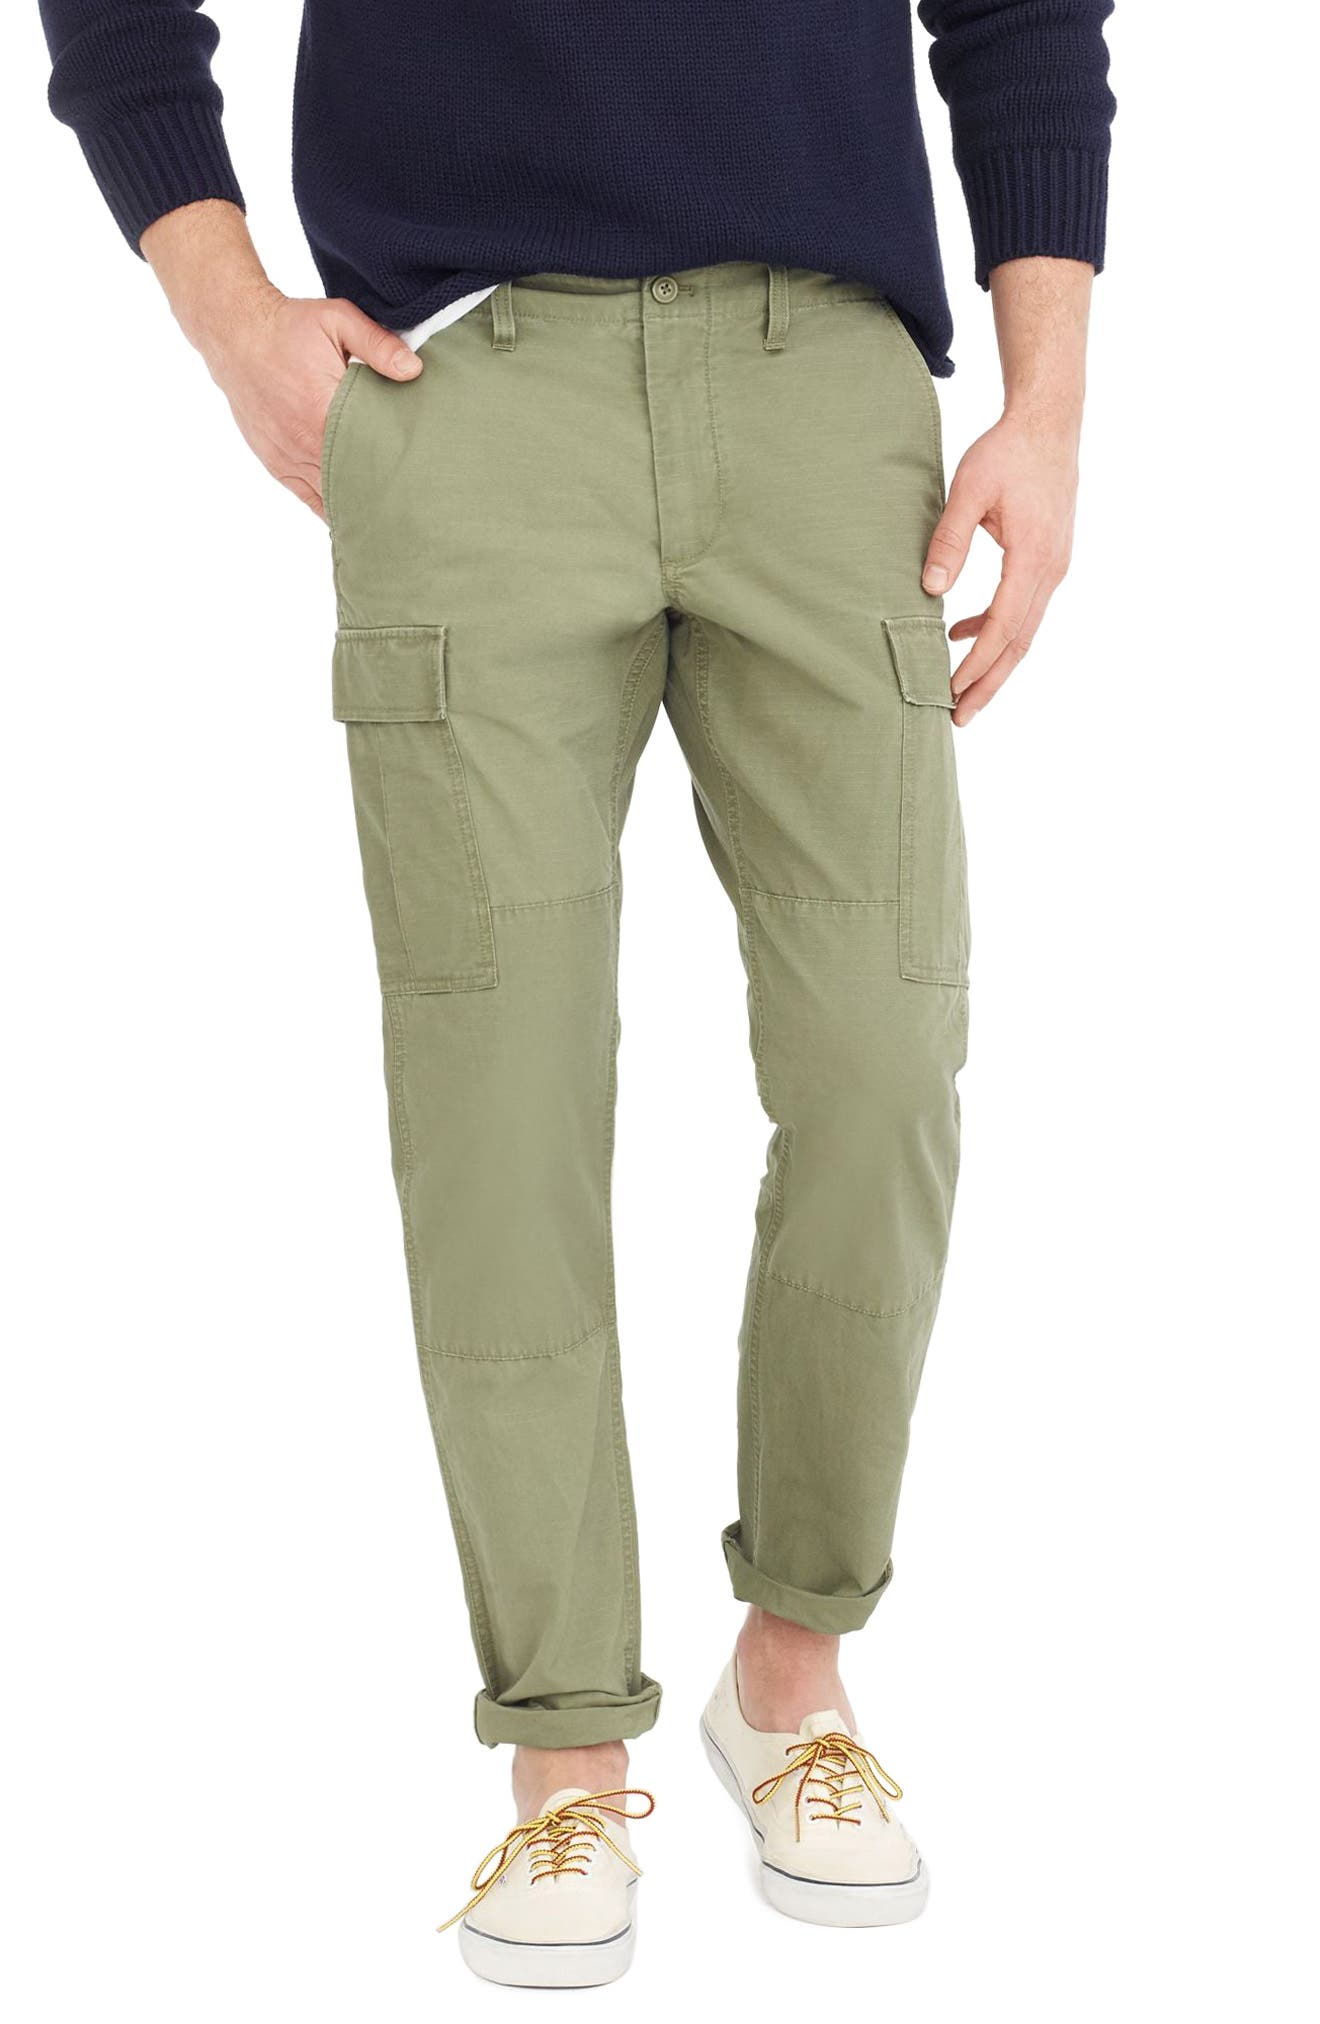 J.Crew 770 Straight Fit Ripstop Cargo Pants